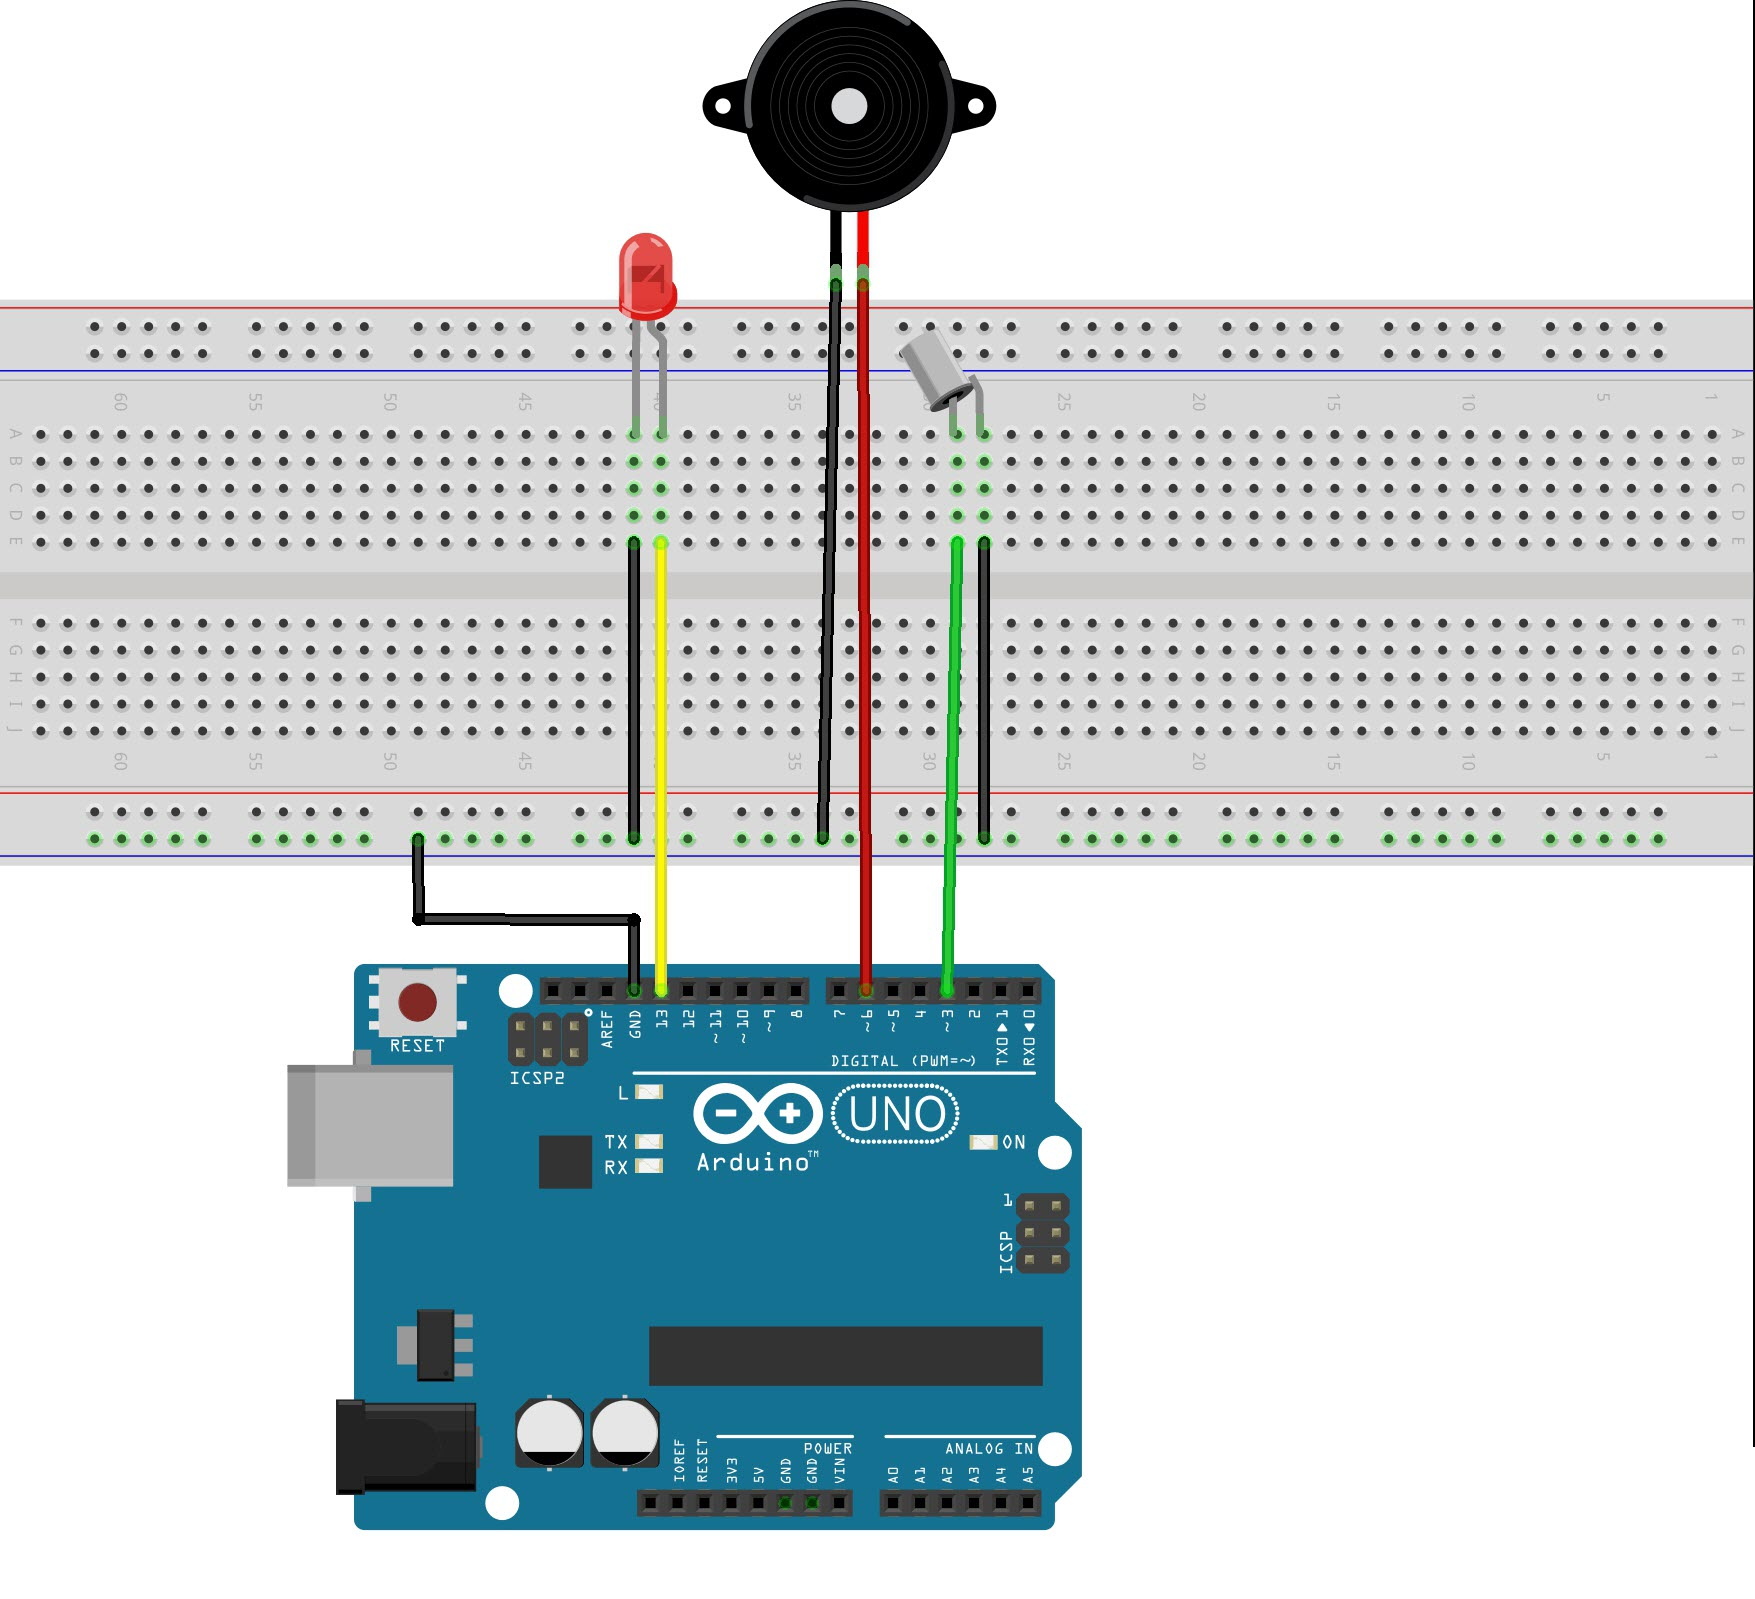 How To Make A Tilt Sensor With Arduino?